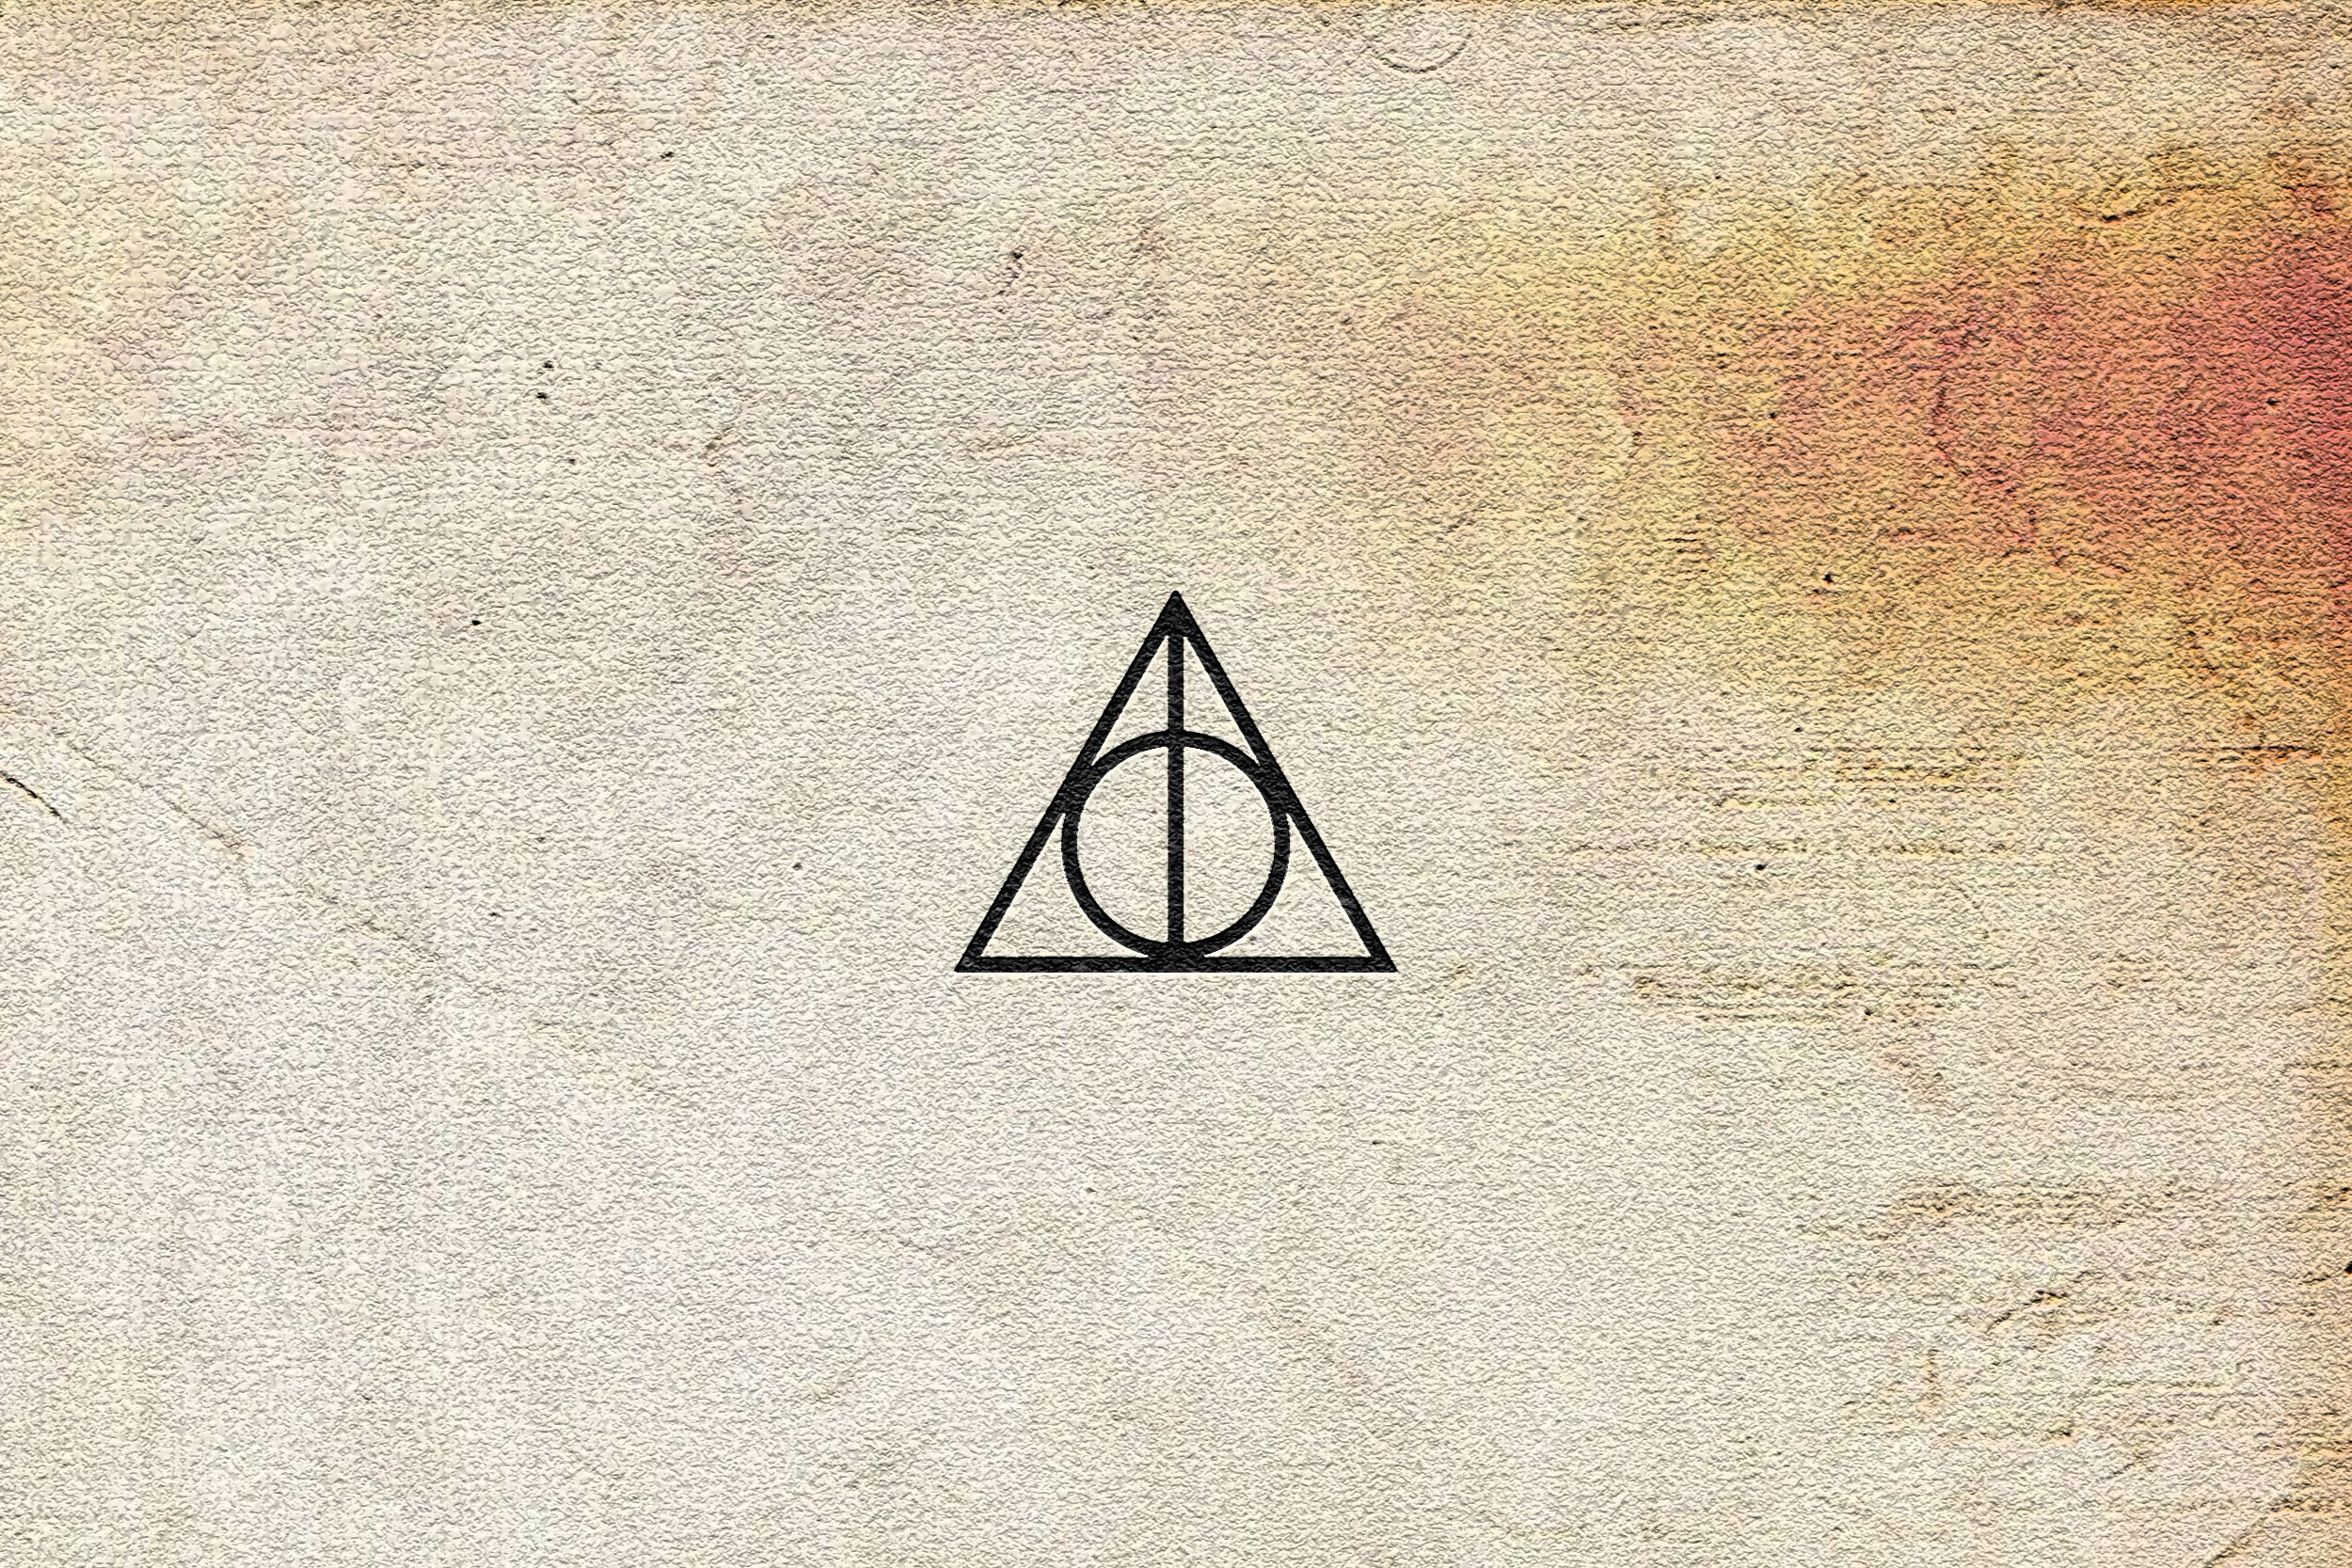 deathly-hallows-wallpaper